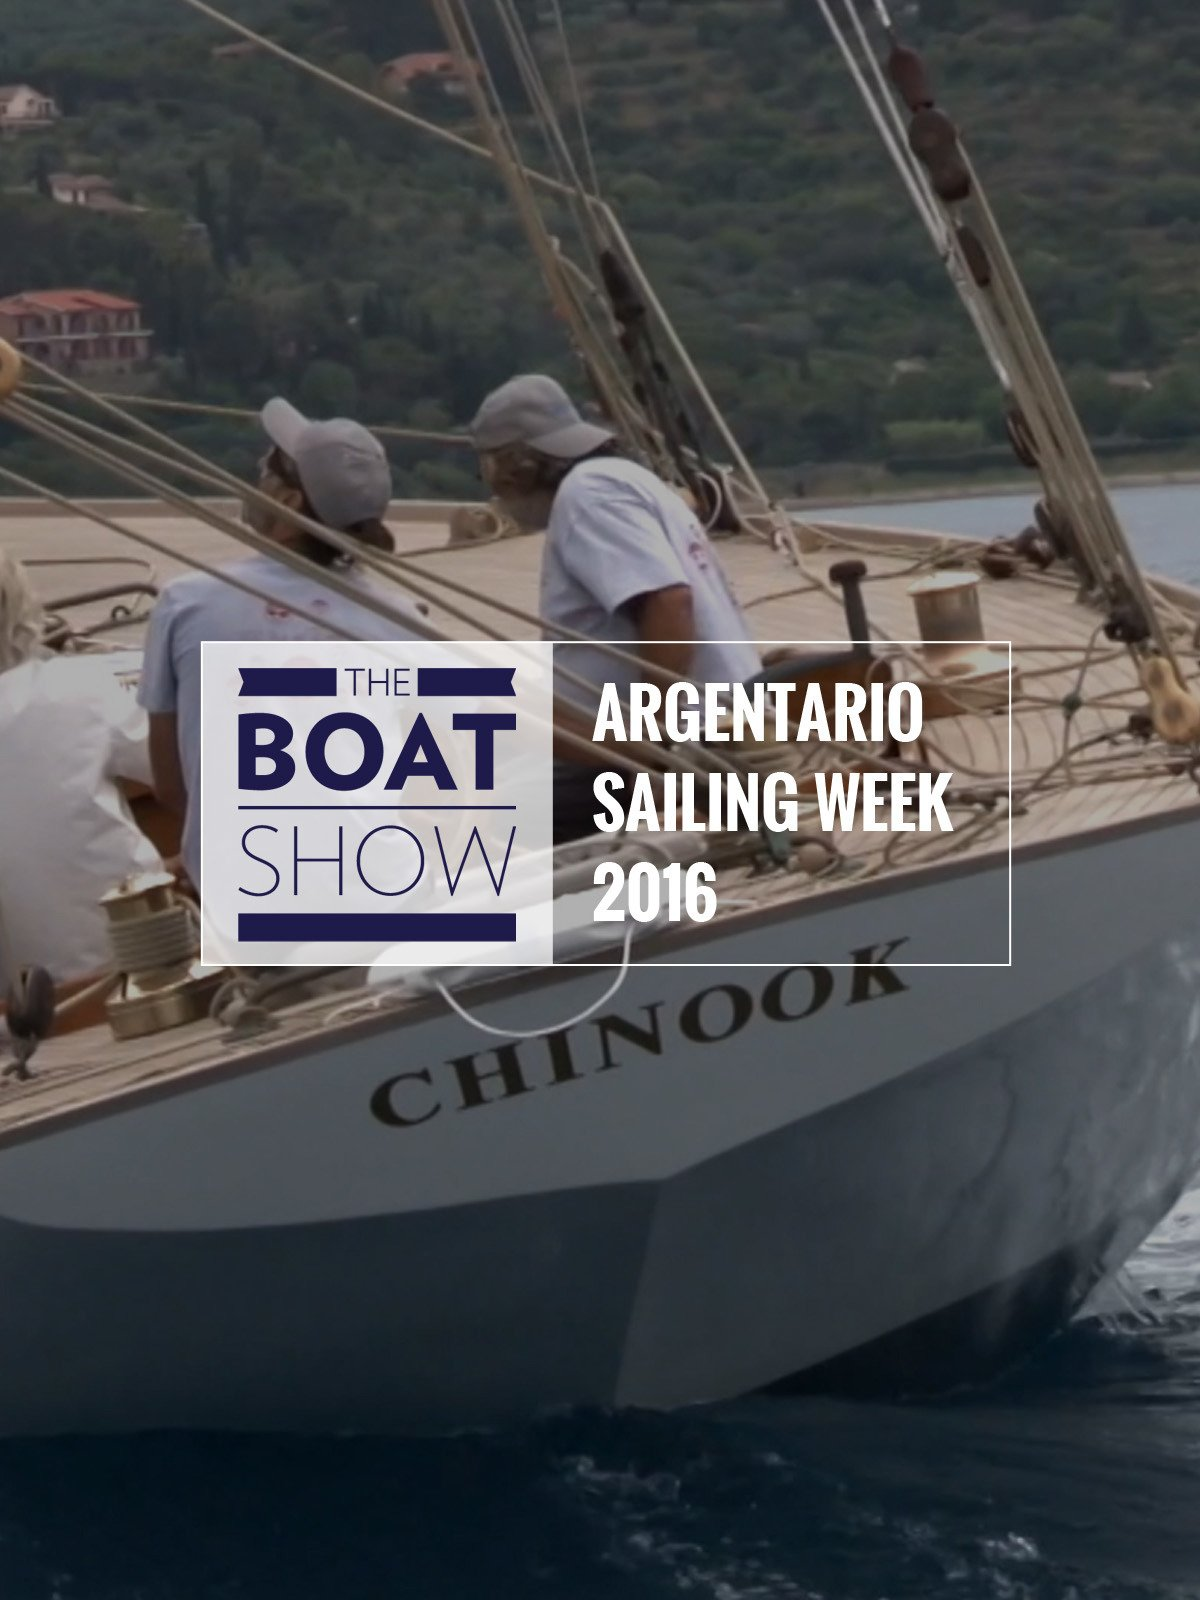 Argentario Sailing Week 2016 - The Boat Show